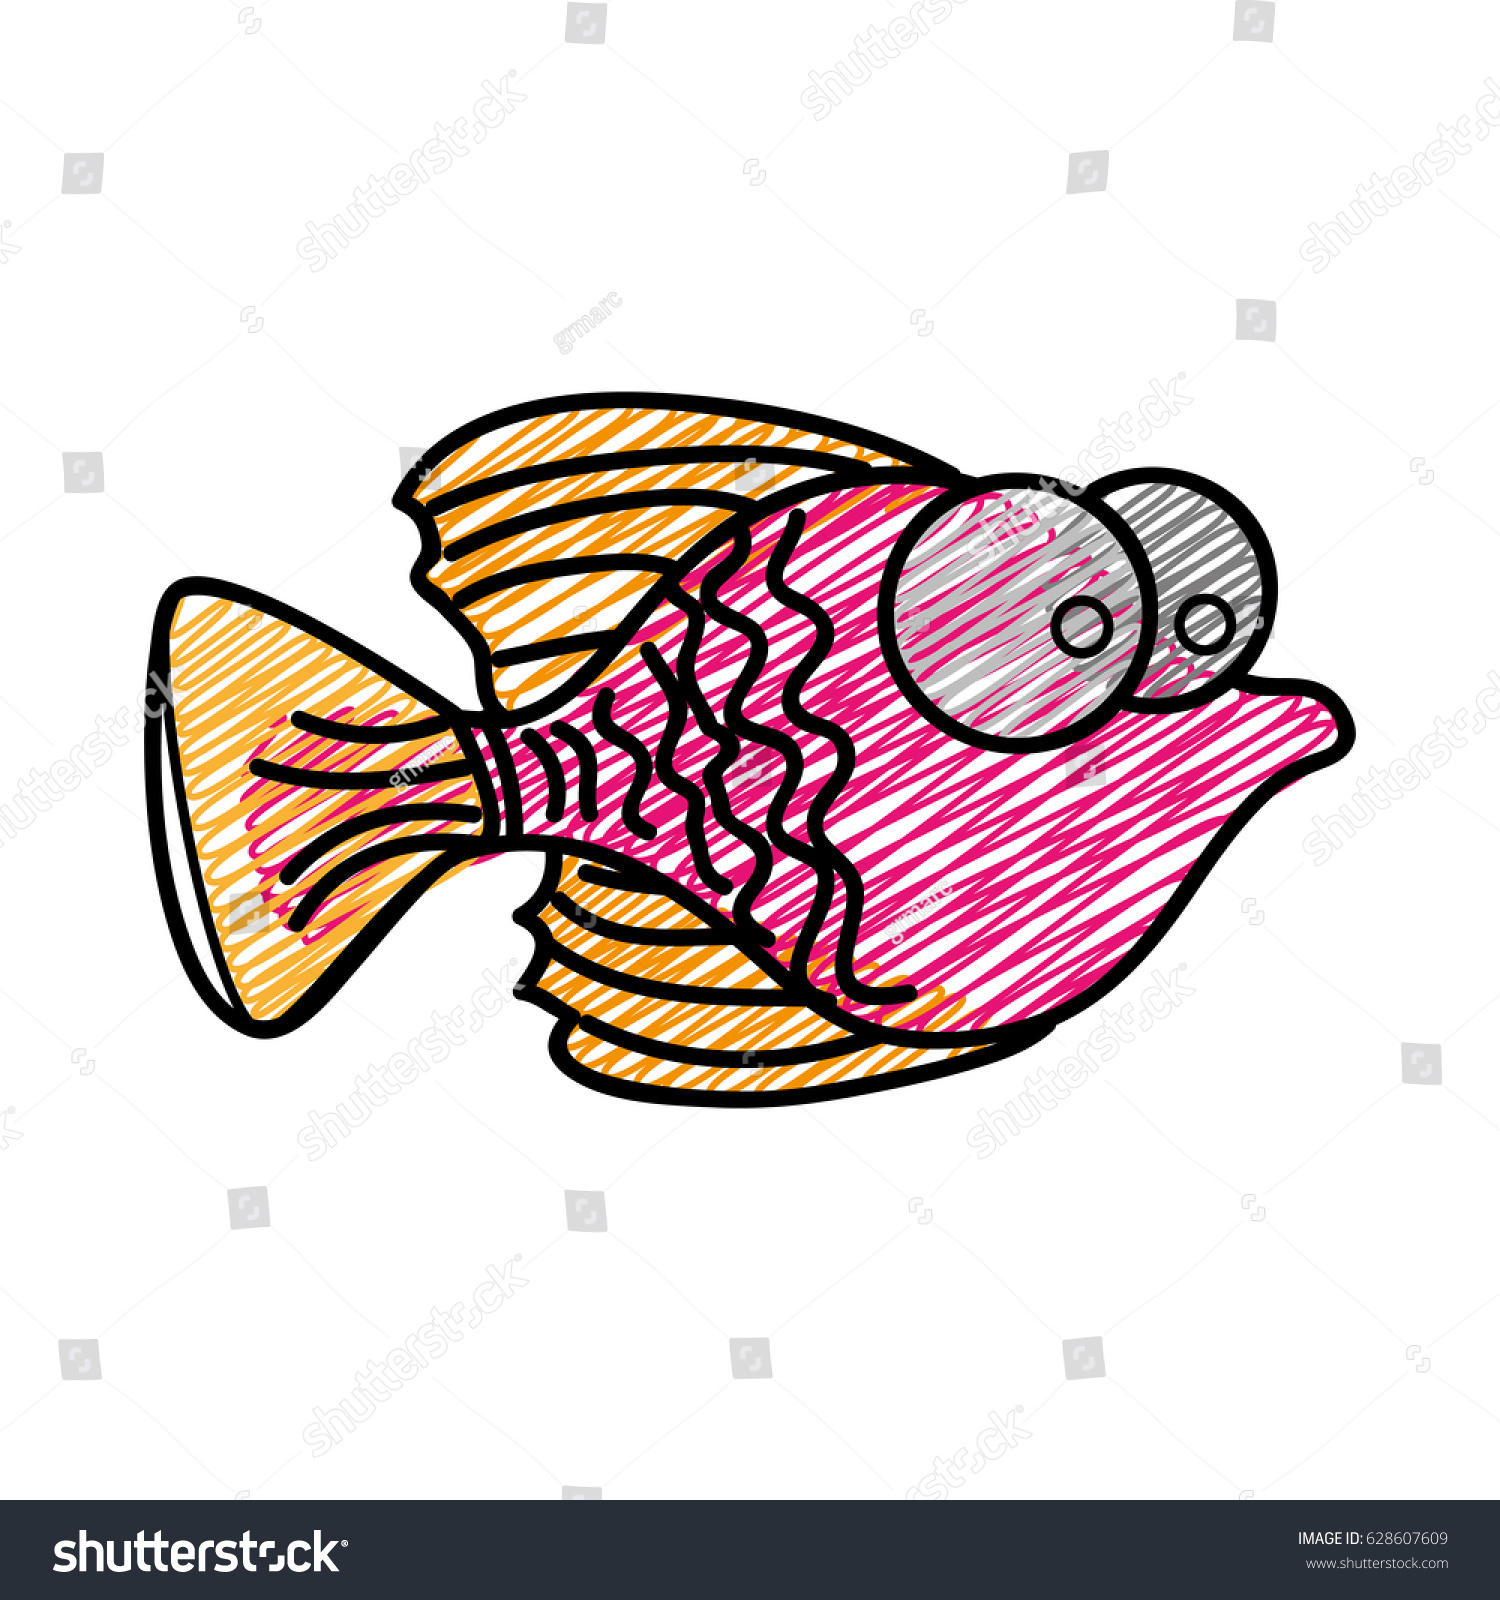 Color pencil drawing of small fish with big eyes vector illustration